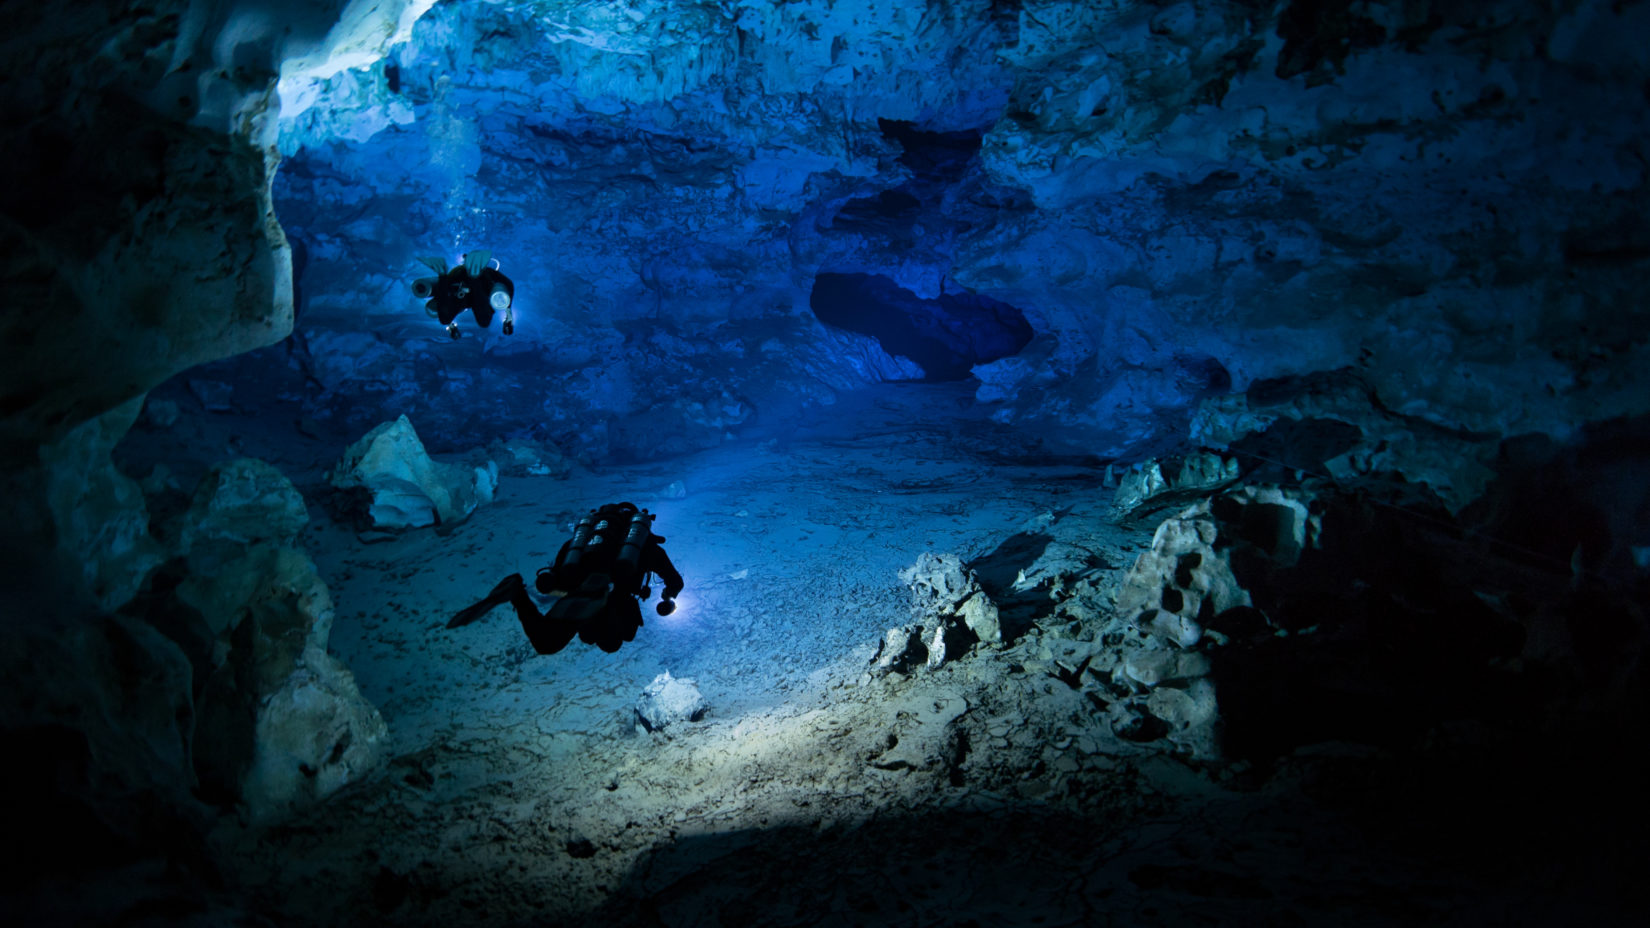 Bigblue dive lights blog madagascar cave diving association